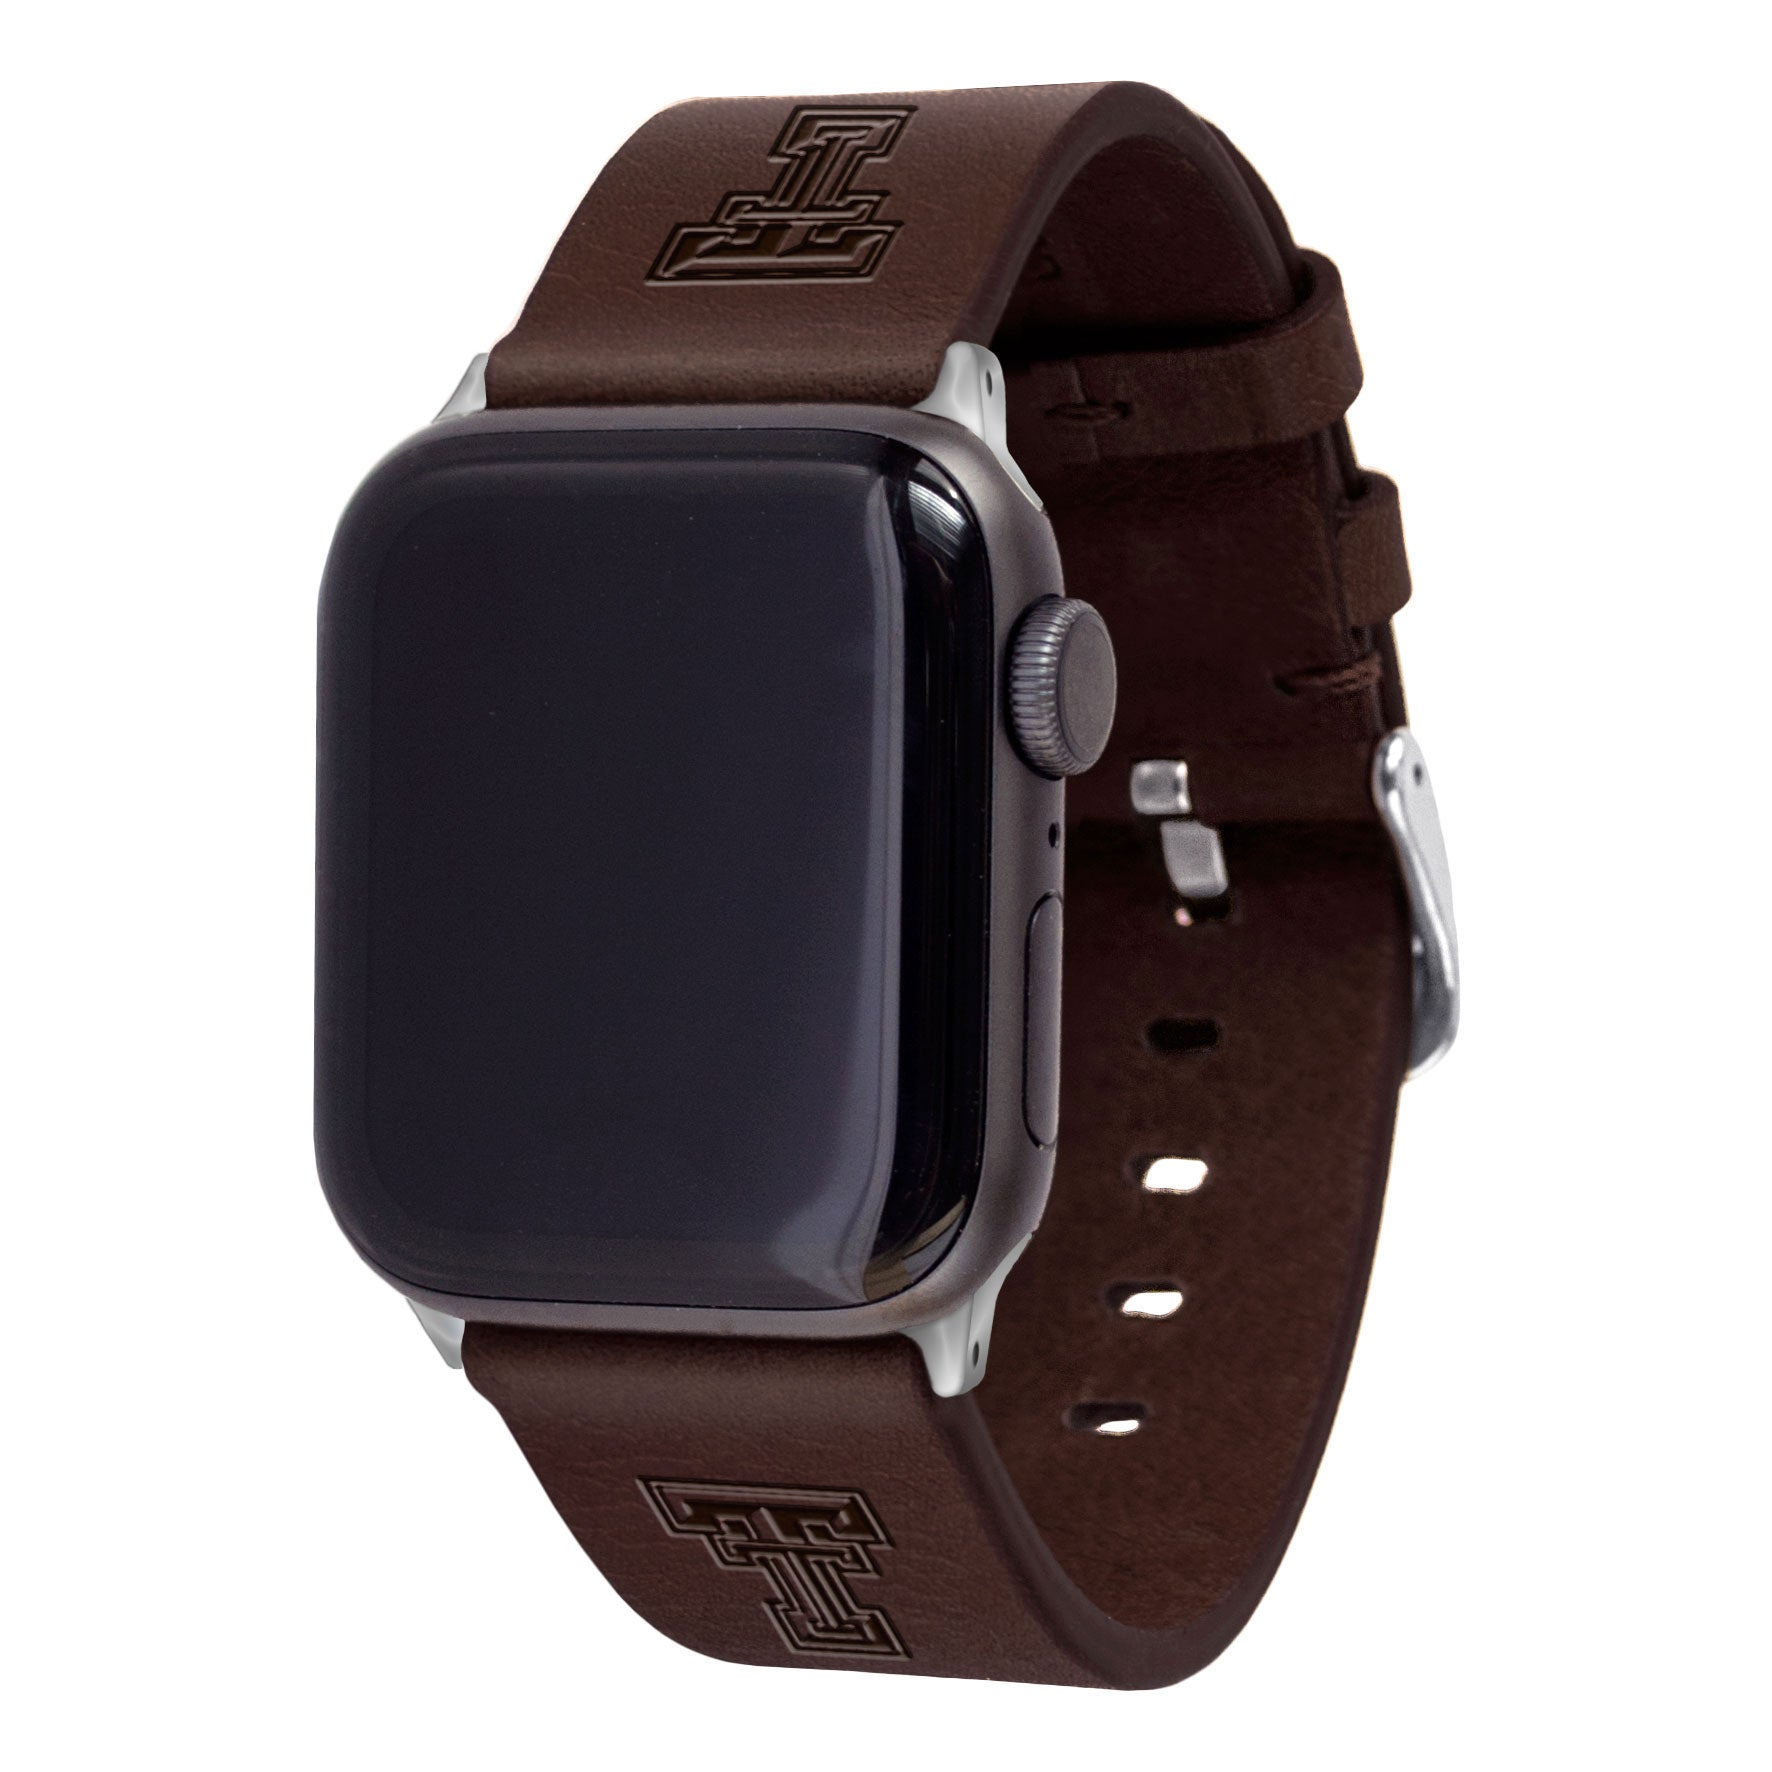 Texas Tech Red Raiders Leather Apple Watch Band